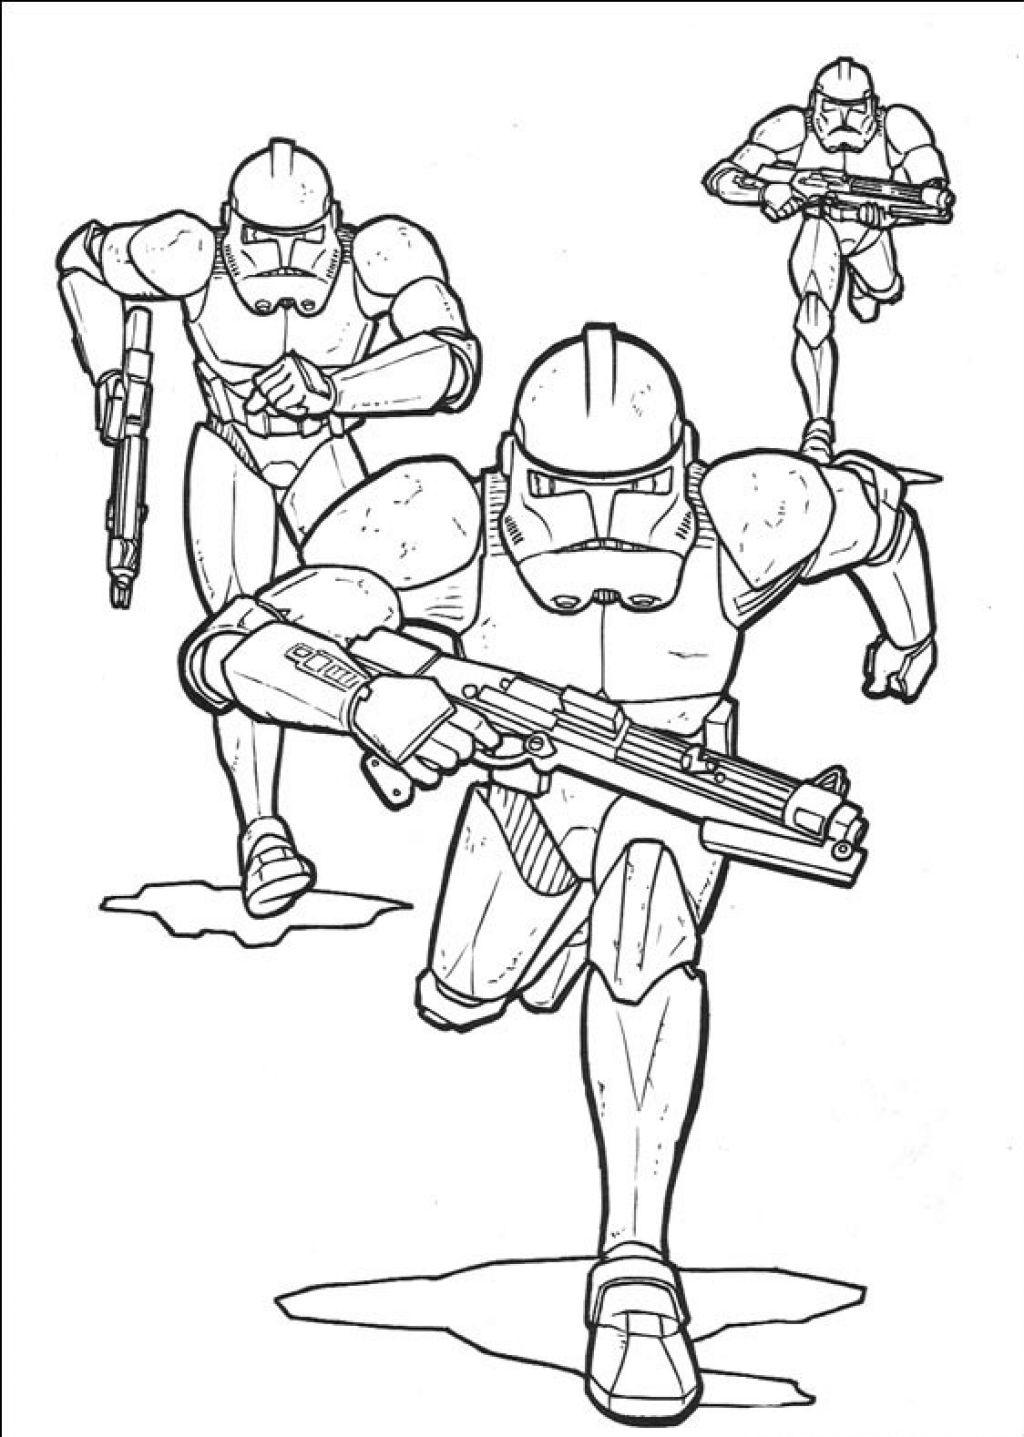 Star Wars Coloring Pages Free Printable Star Wars Coloring Pages Download Of Coloring Pages Of Star Wars Free Coloring Pages Star Wars Printable